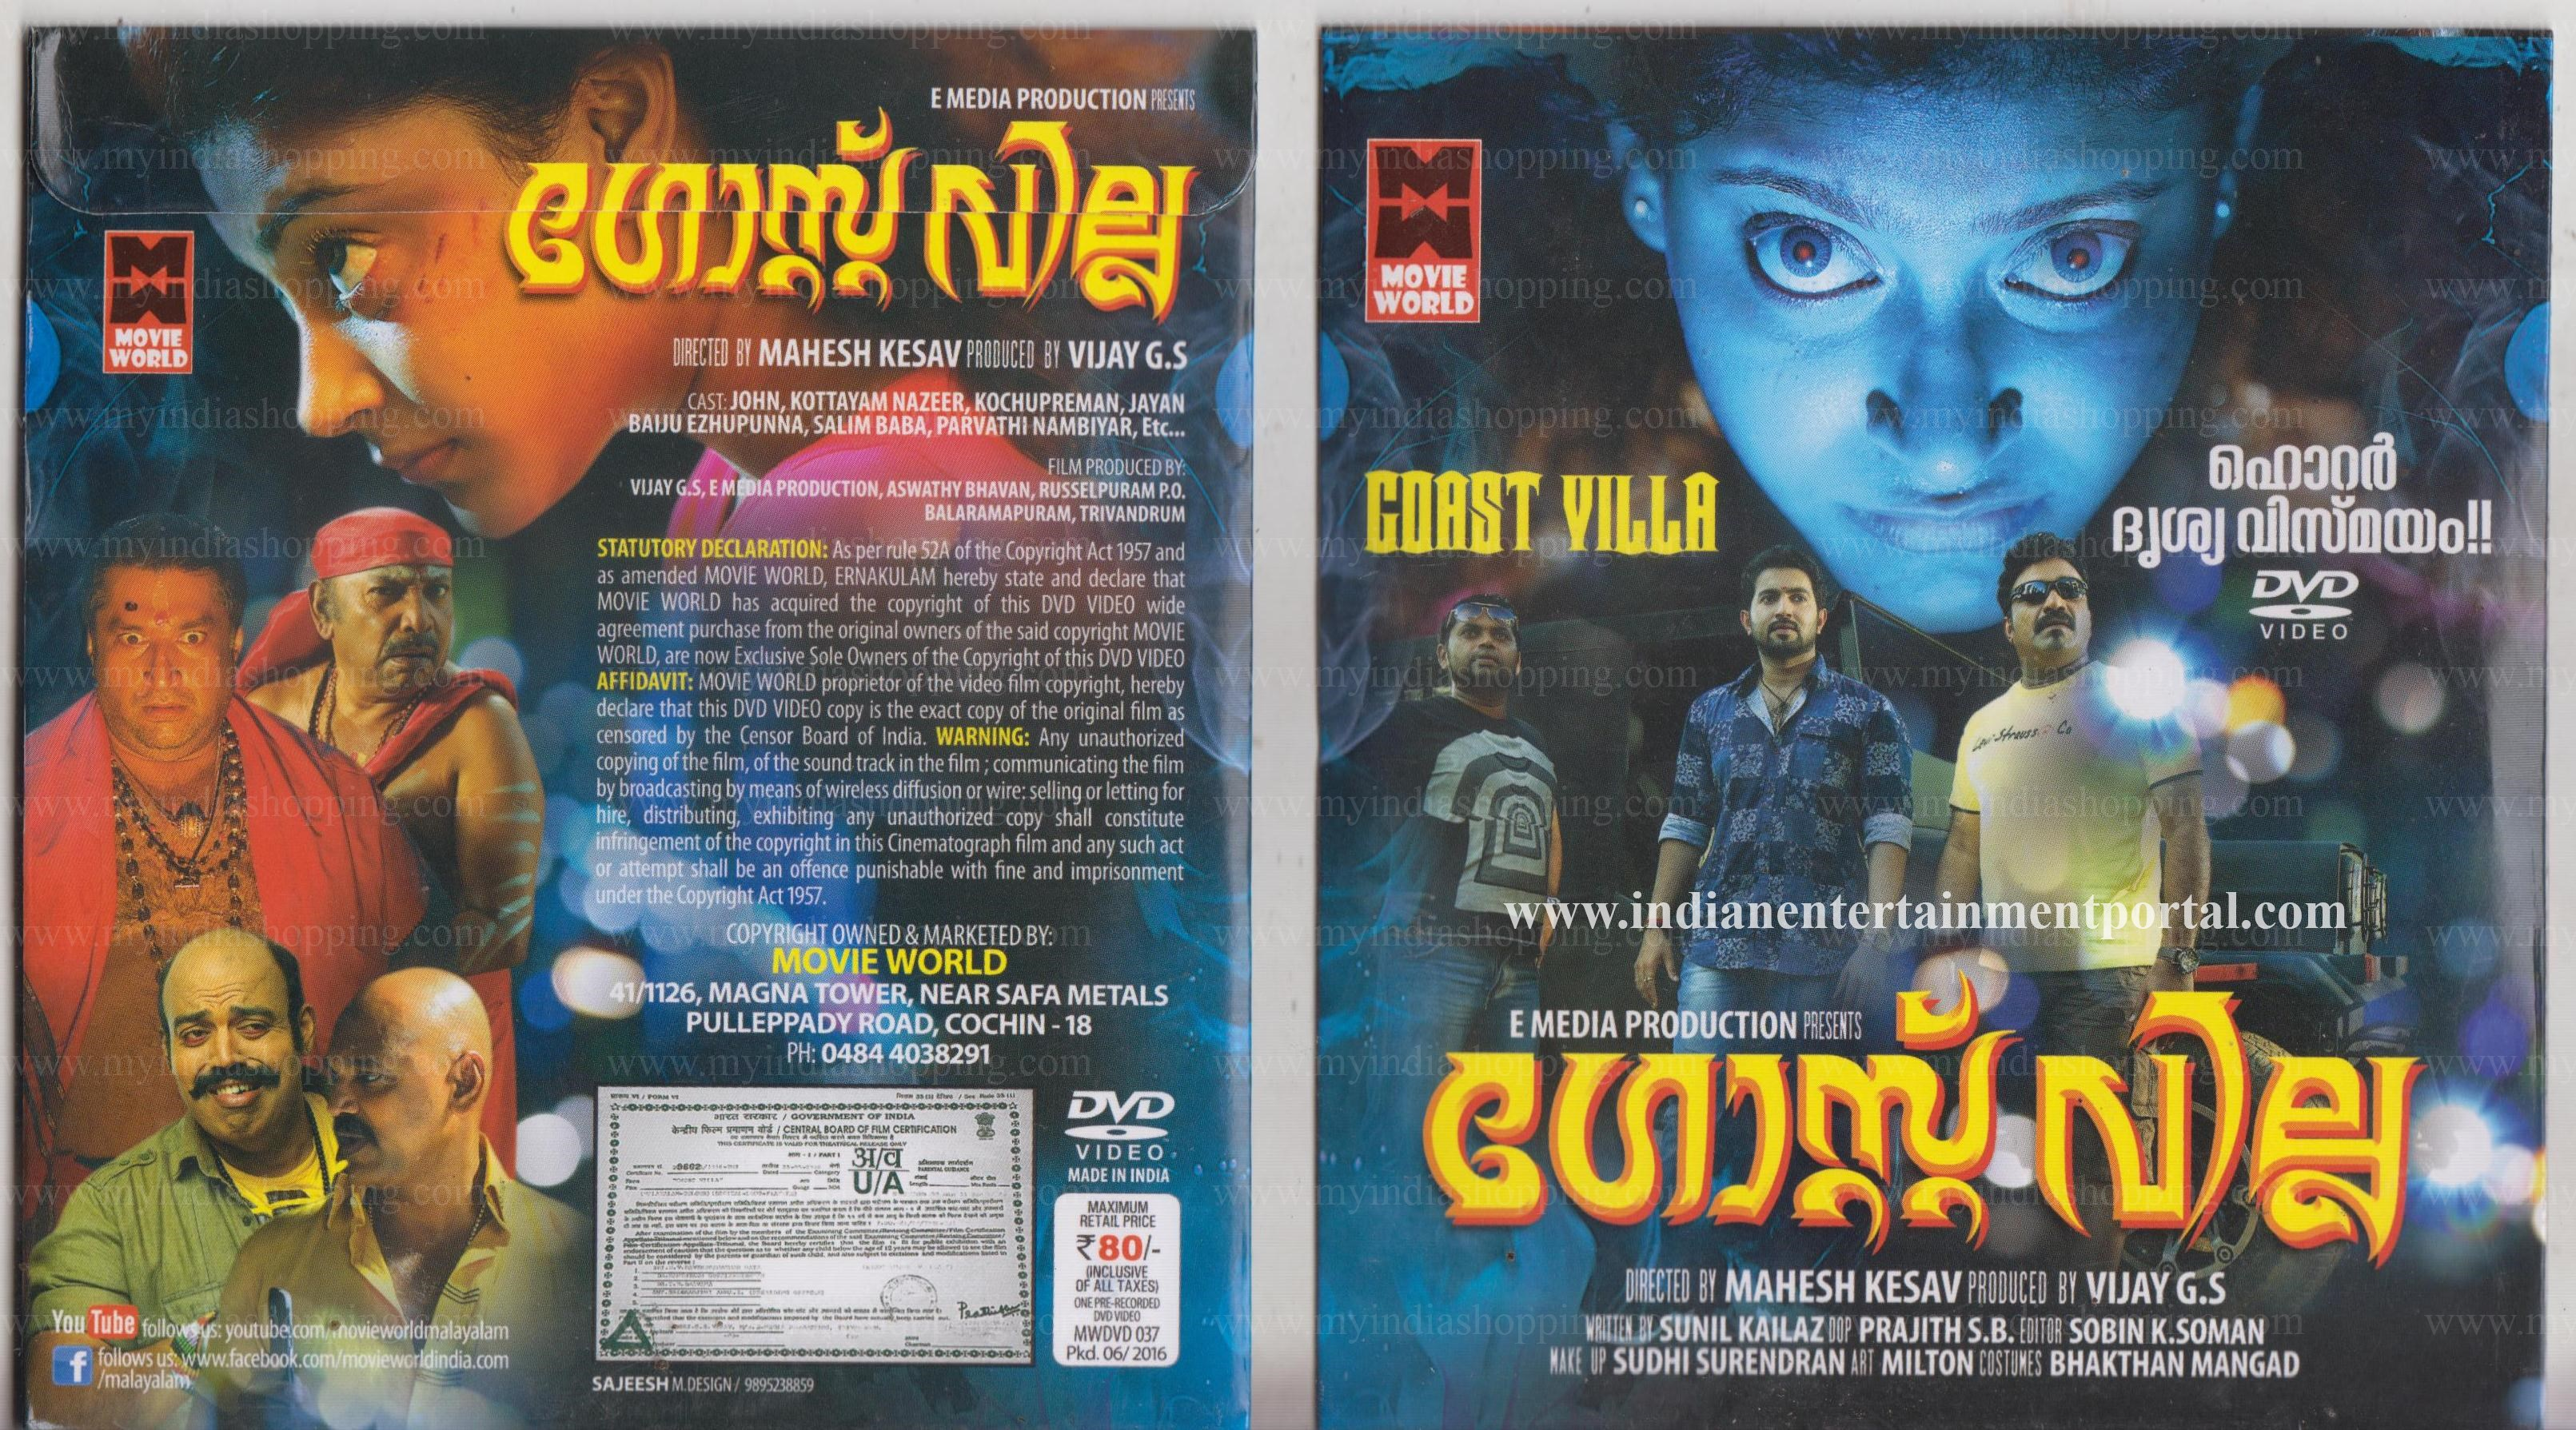 GHOST VILLA DVD Released from MOVIE WORLD